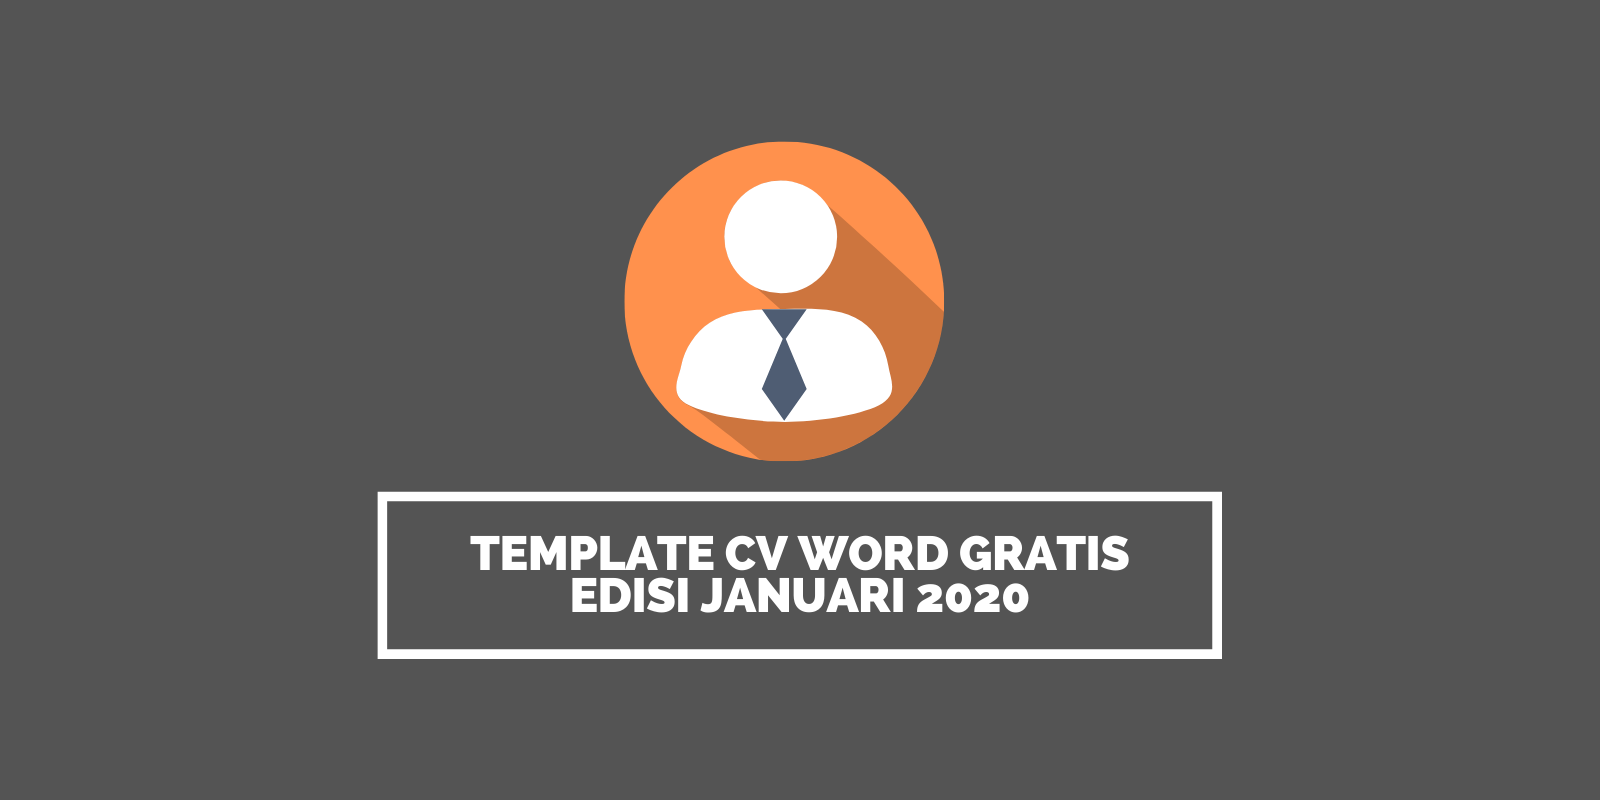 Template CV Word Gratis Edisi Januari 2020